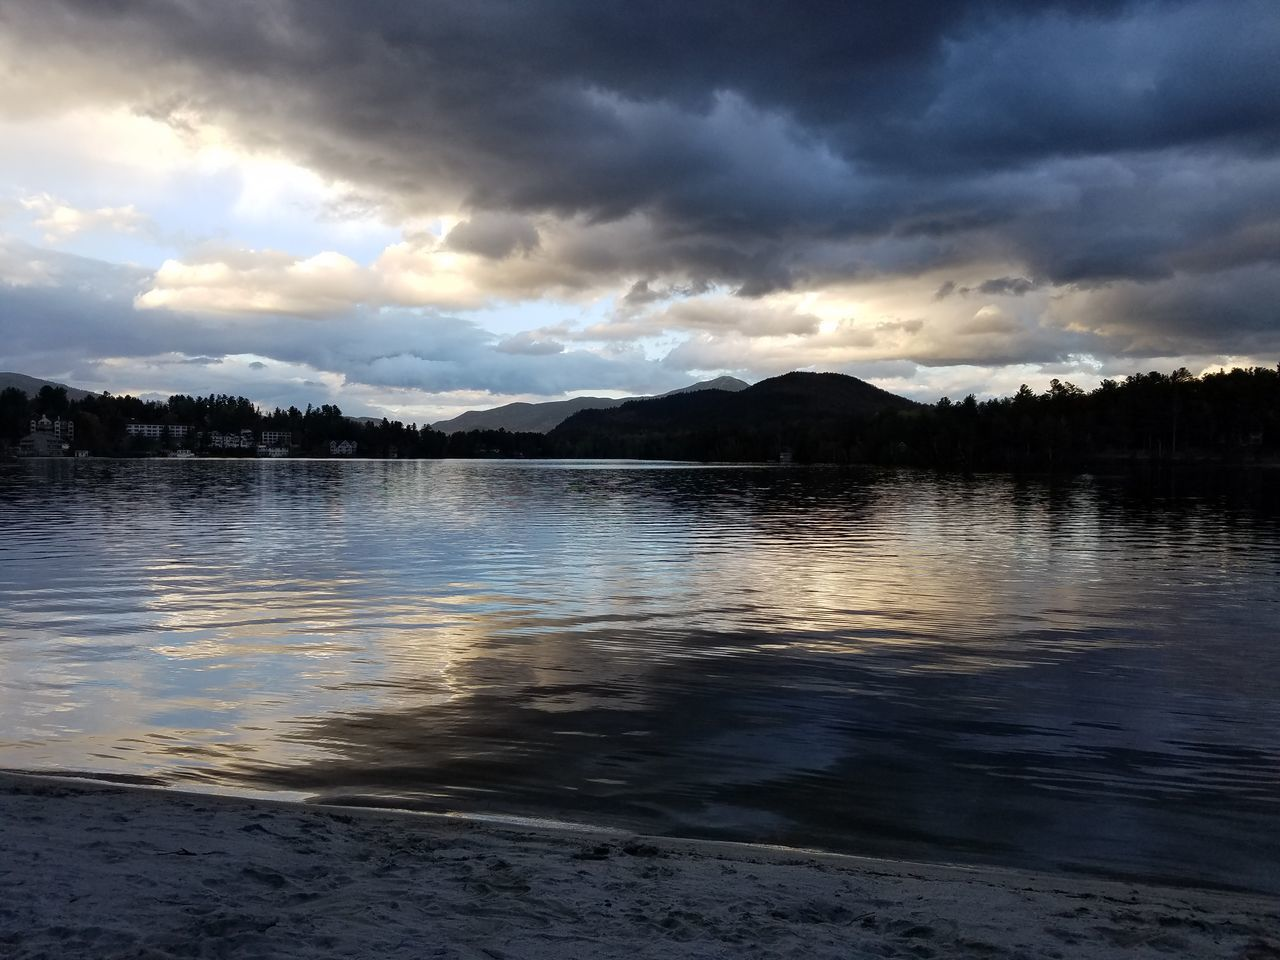 Lake Cloud - Sky Water Mountain Nature Beauty In Nature Outdoors Landscape No People Scenics Tranquility Sky Sunset Tree Day Lake Placid, NY Mirror Lake Lake View Trees Cloudy Skies Peace And Quiet Tranquil Scene Tranquility Nature Remote